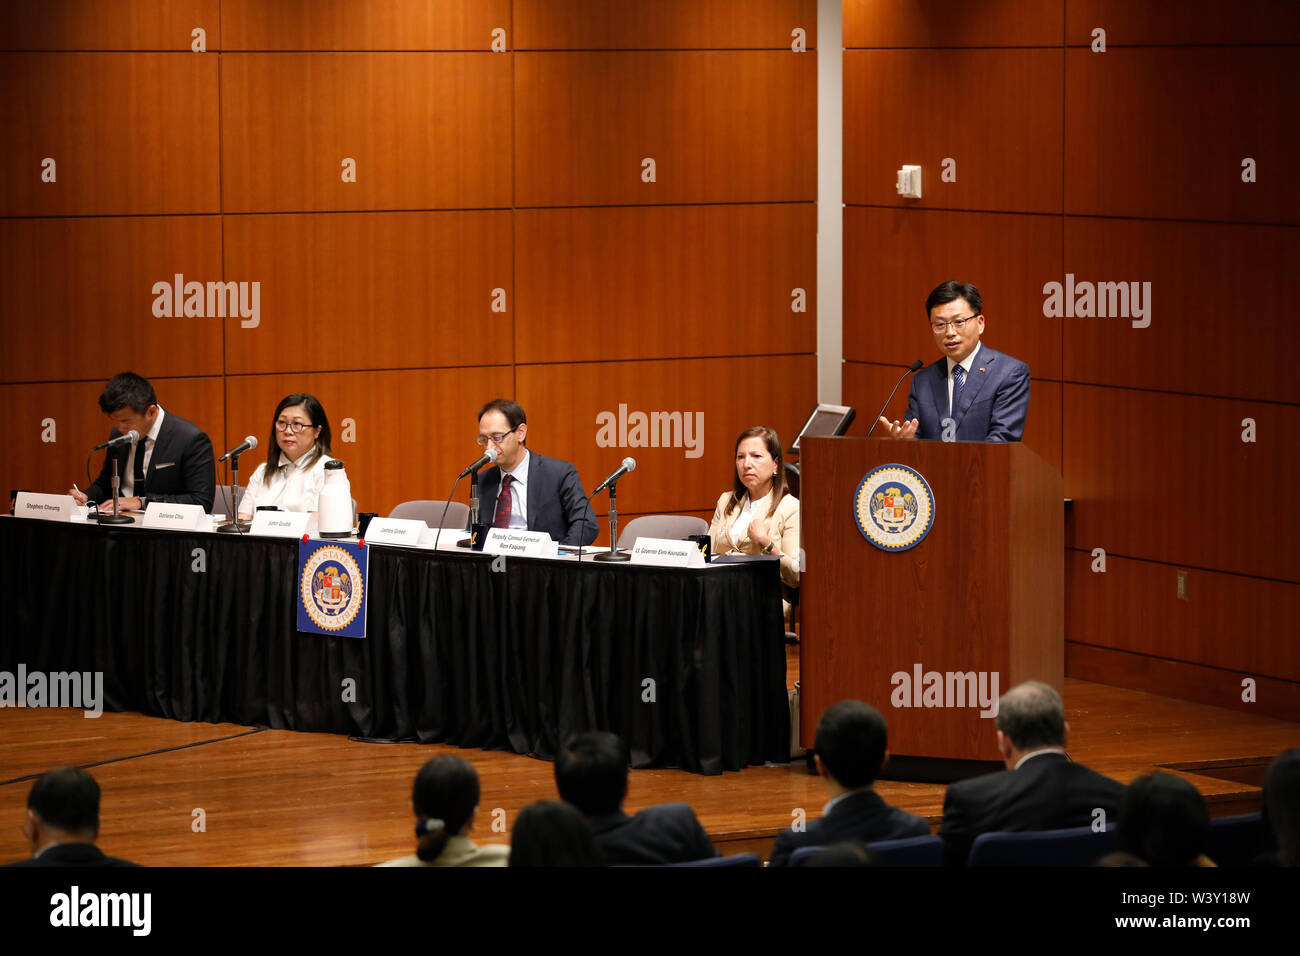 (190718) -- SAN FRANCISCO, July 18, 2019 (Xinhua) -- Chinese Deputy Consul General Ren Faqiang (1st R) speaks at a hearing on the effects of U.S.-China trade dispute in San Francisco, California, the United States, July 17, 2019. California's agriculture was 'the hardest hit' in the ongoing U.S.-China trade dispute, with the biggest drop in exports to China recorded, a state assembly leader said Wednesday. American wine exports to China have fallen by 25 percent, with 90 percent of the loss coming from California, since U.S. President Donald Trump escalated trade frictions with China by imp - Stock Image